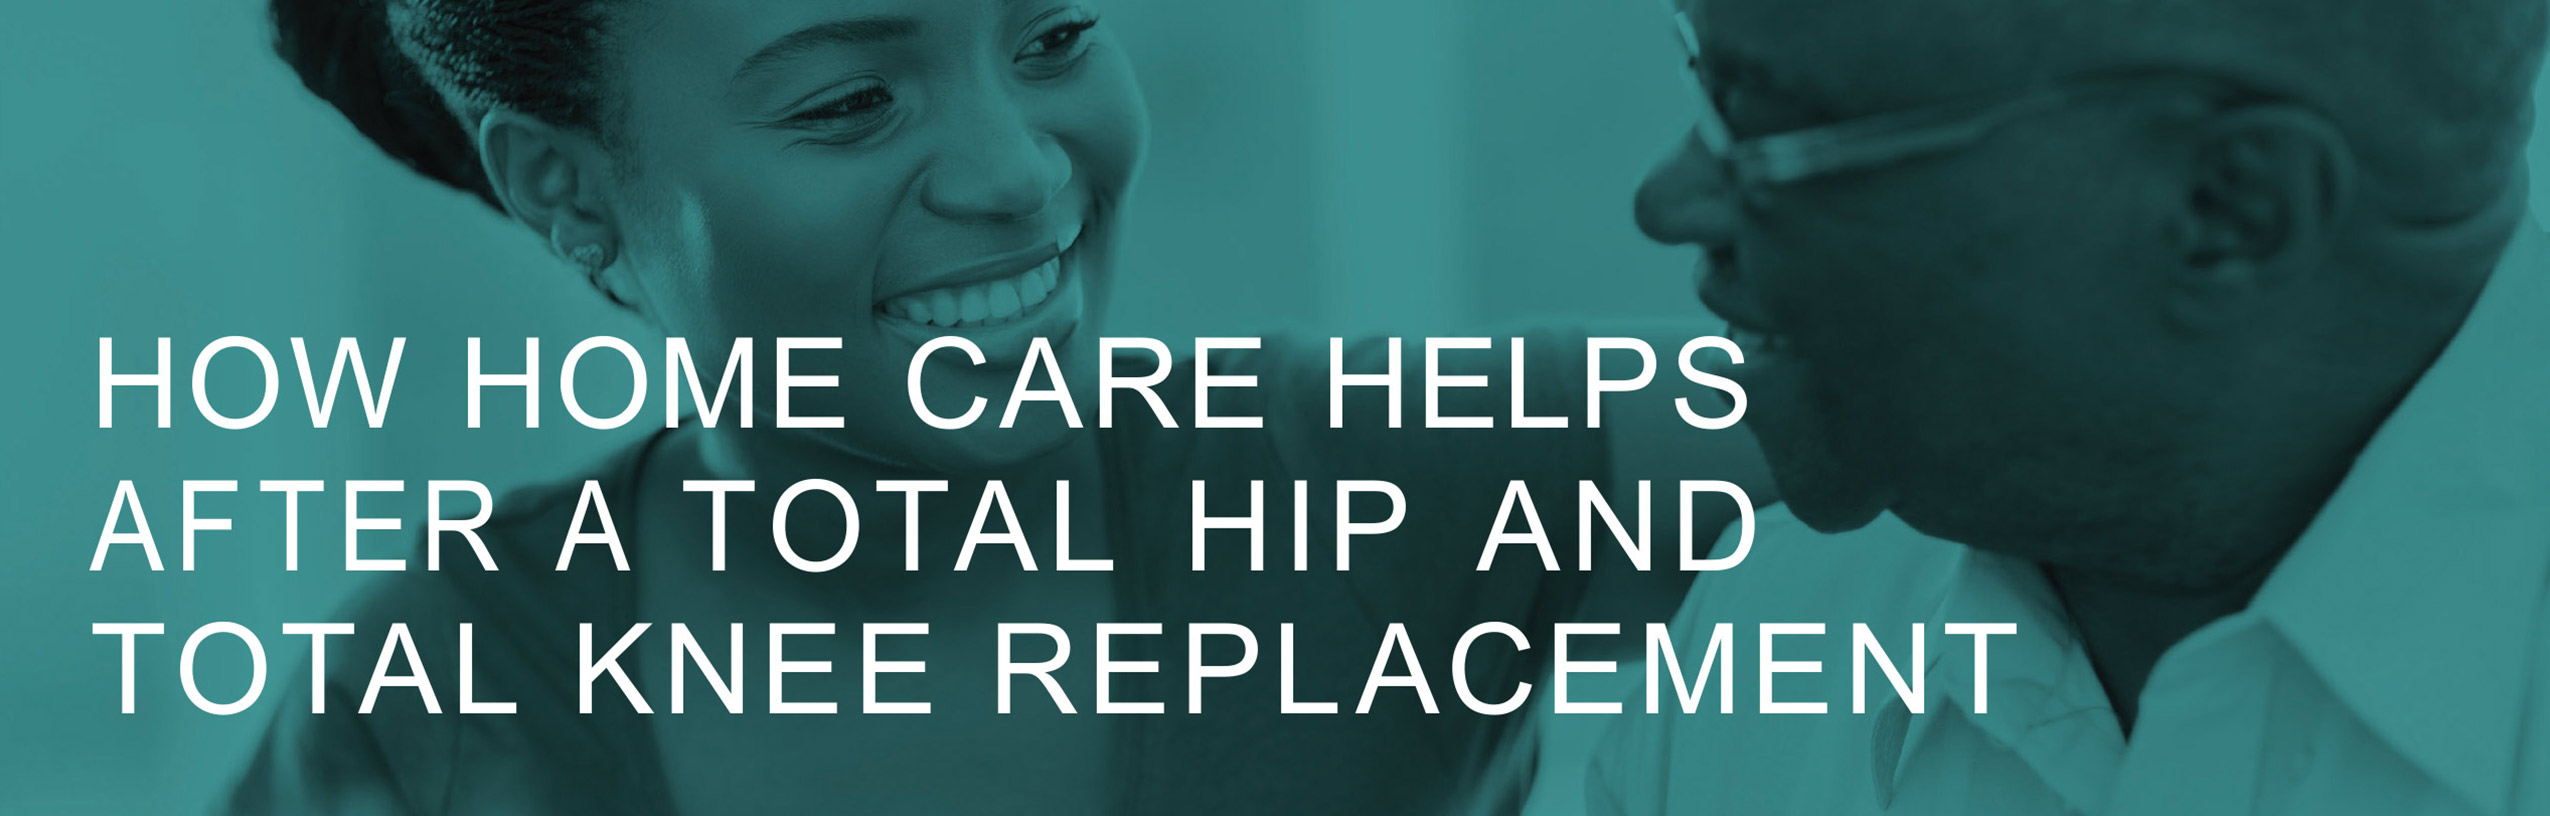 Helpful Home Care info about hip and knee replacement